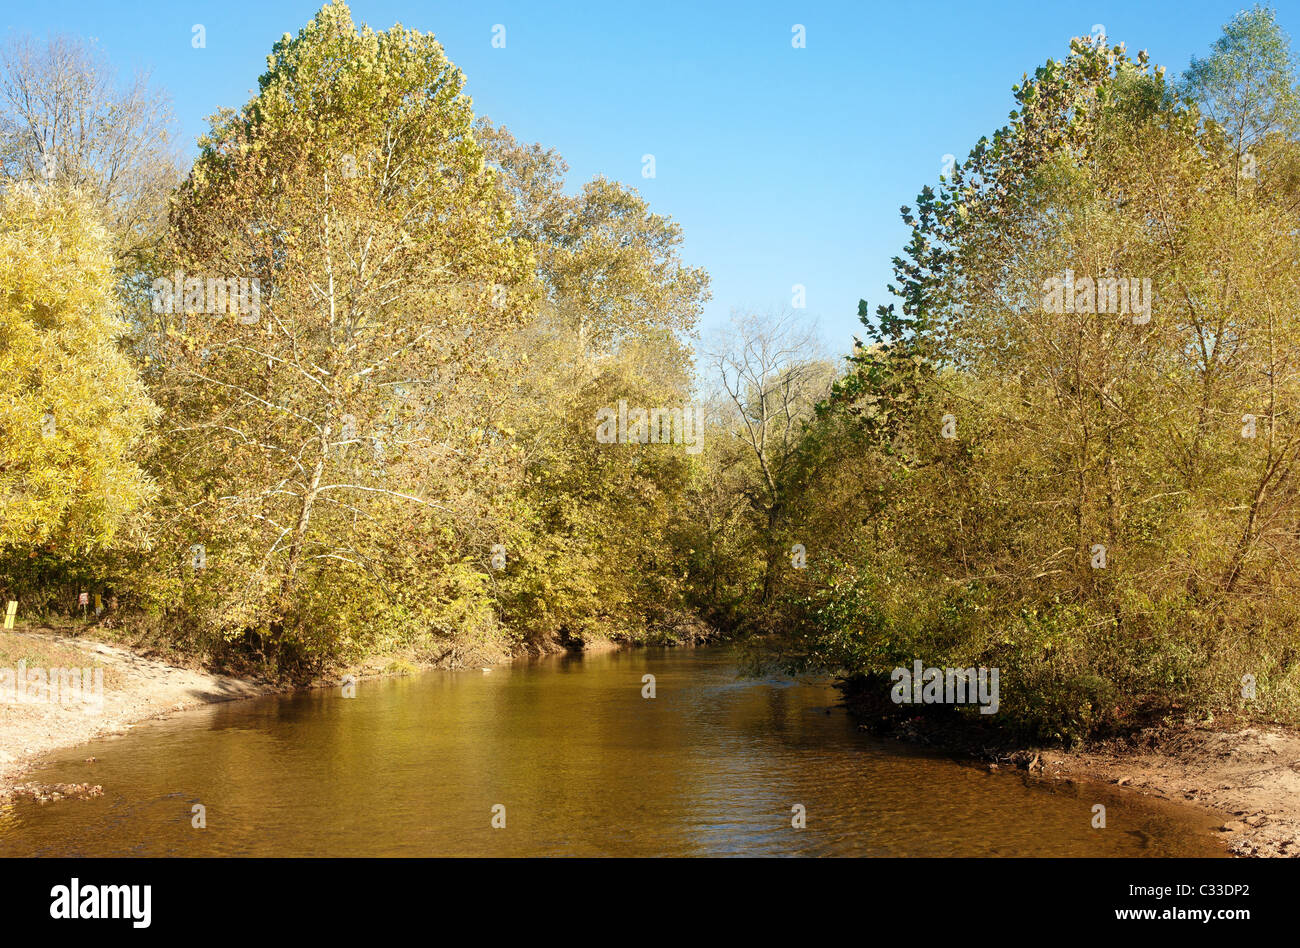 beautiful scene of missouri in autumn or fall - Stock Image